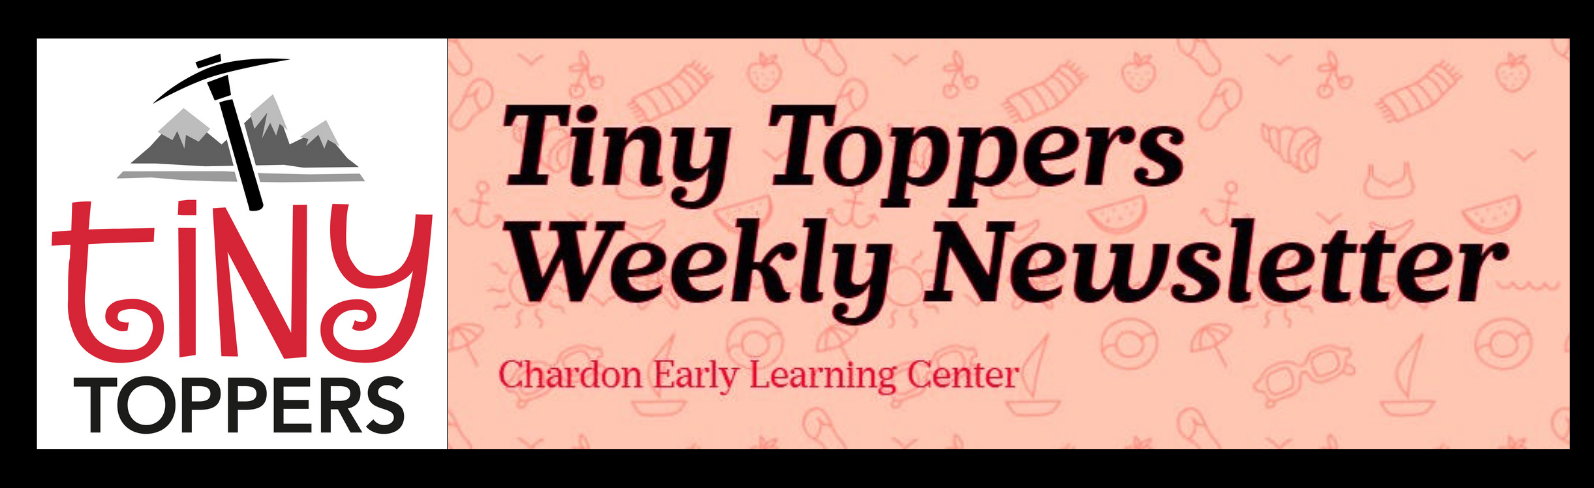 Tiny Toppers mountain axe logo; verbiage:  Tiny Toppers Weekly Newsletter - Chardon Early Learning Center